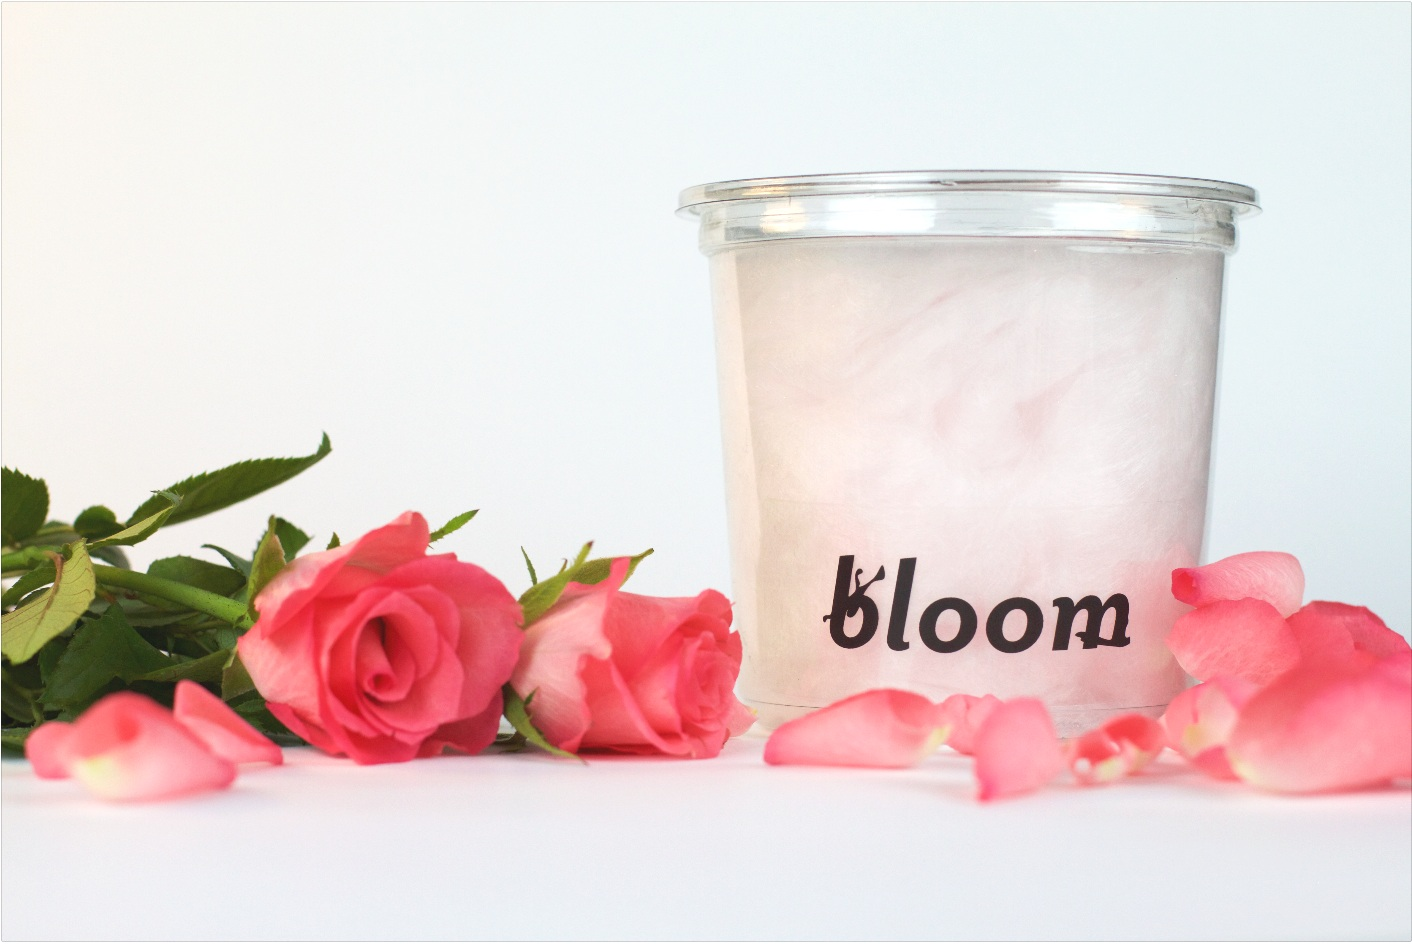 bloom_candyfloss_rose_water_organic_ingredients_our_product_picture_number_3.jpg